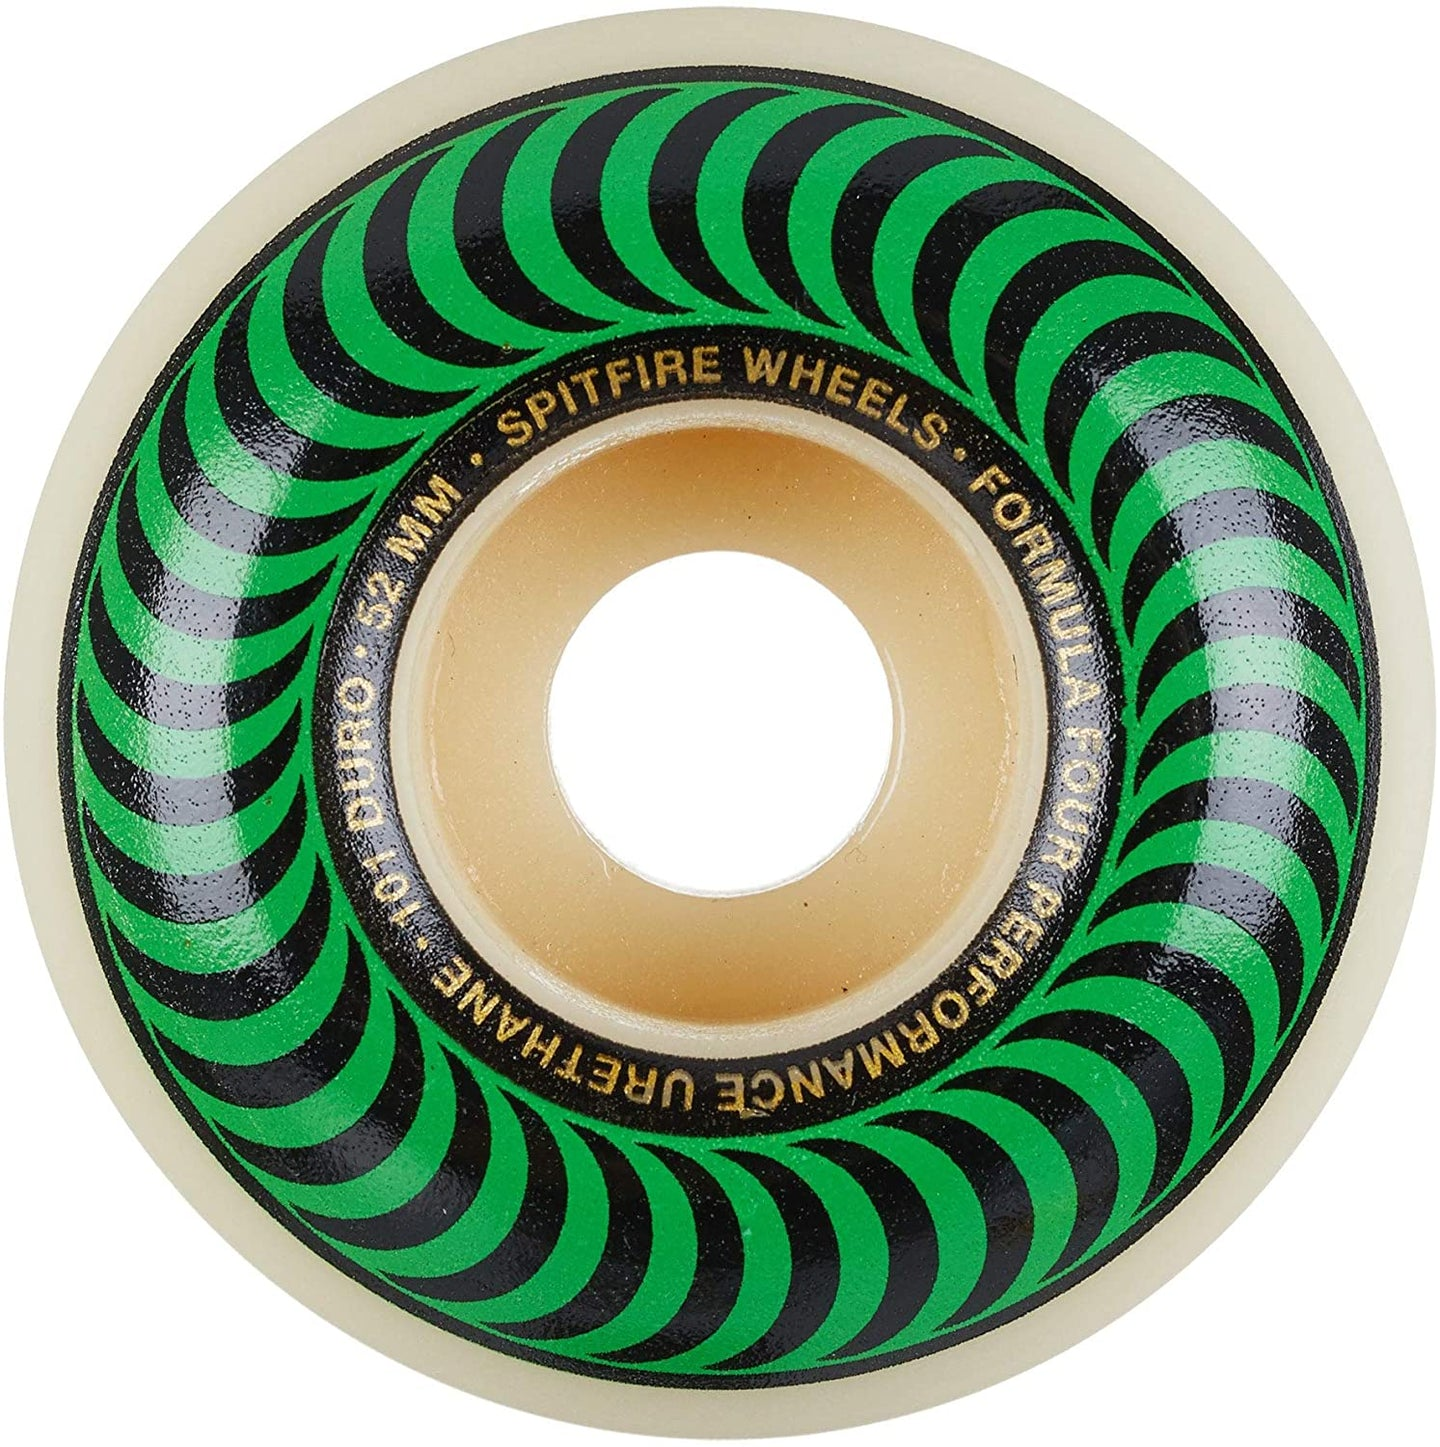 Spitfire Formula Four Skateboard Wheels Natural/Green/Gold 52mm 101DU (4 Pack)